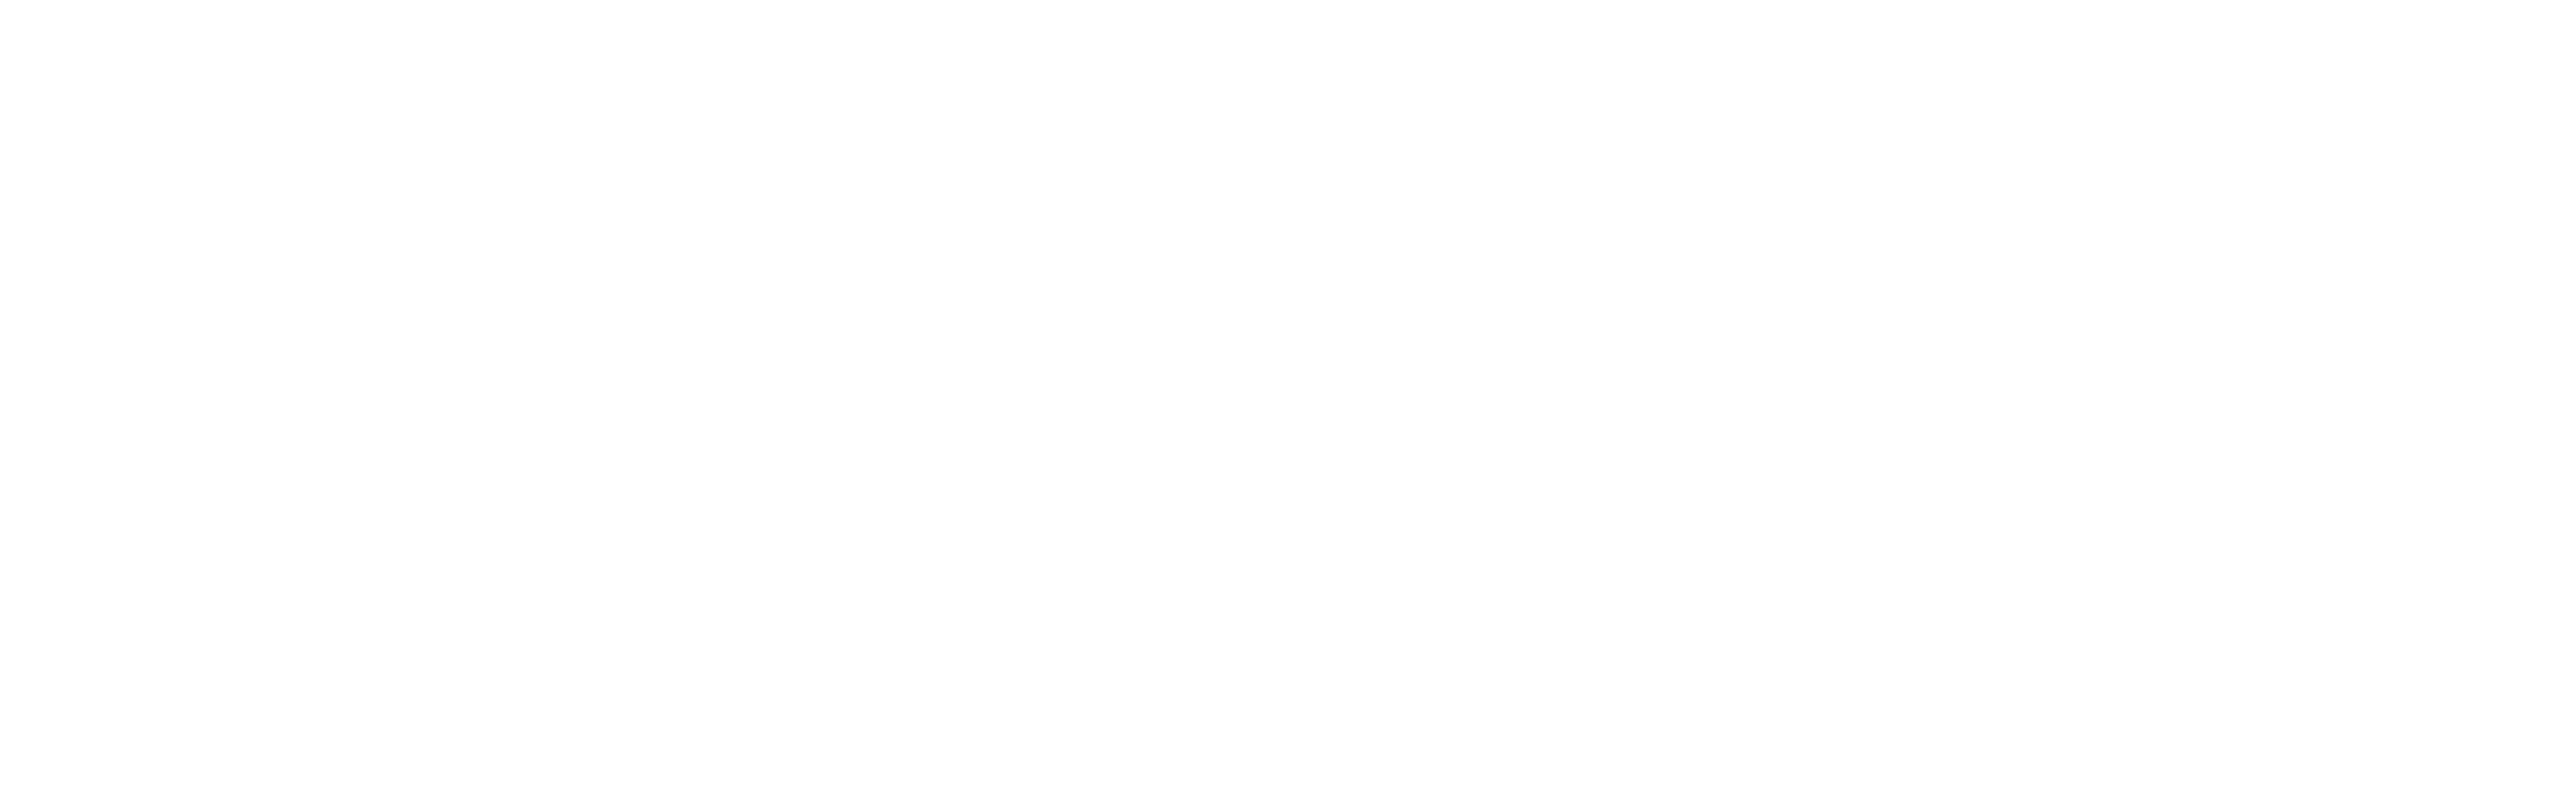 business-development-summit_bocholt